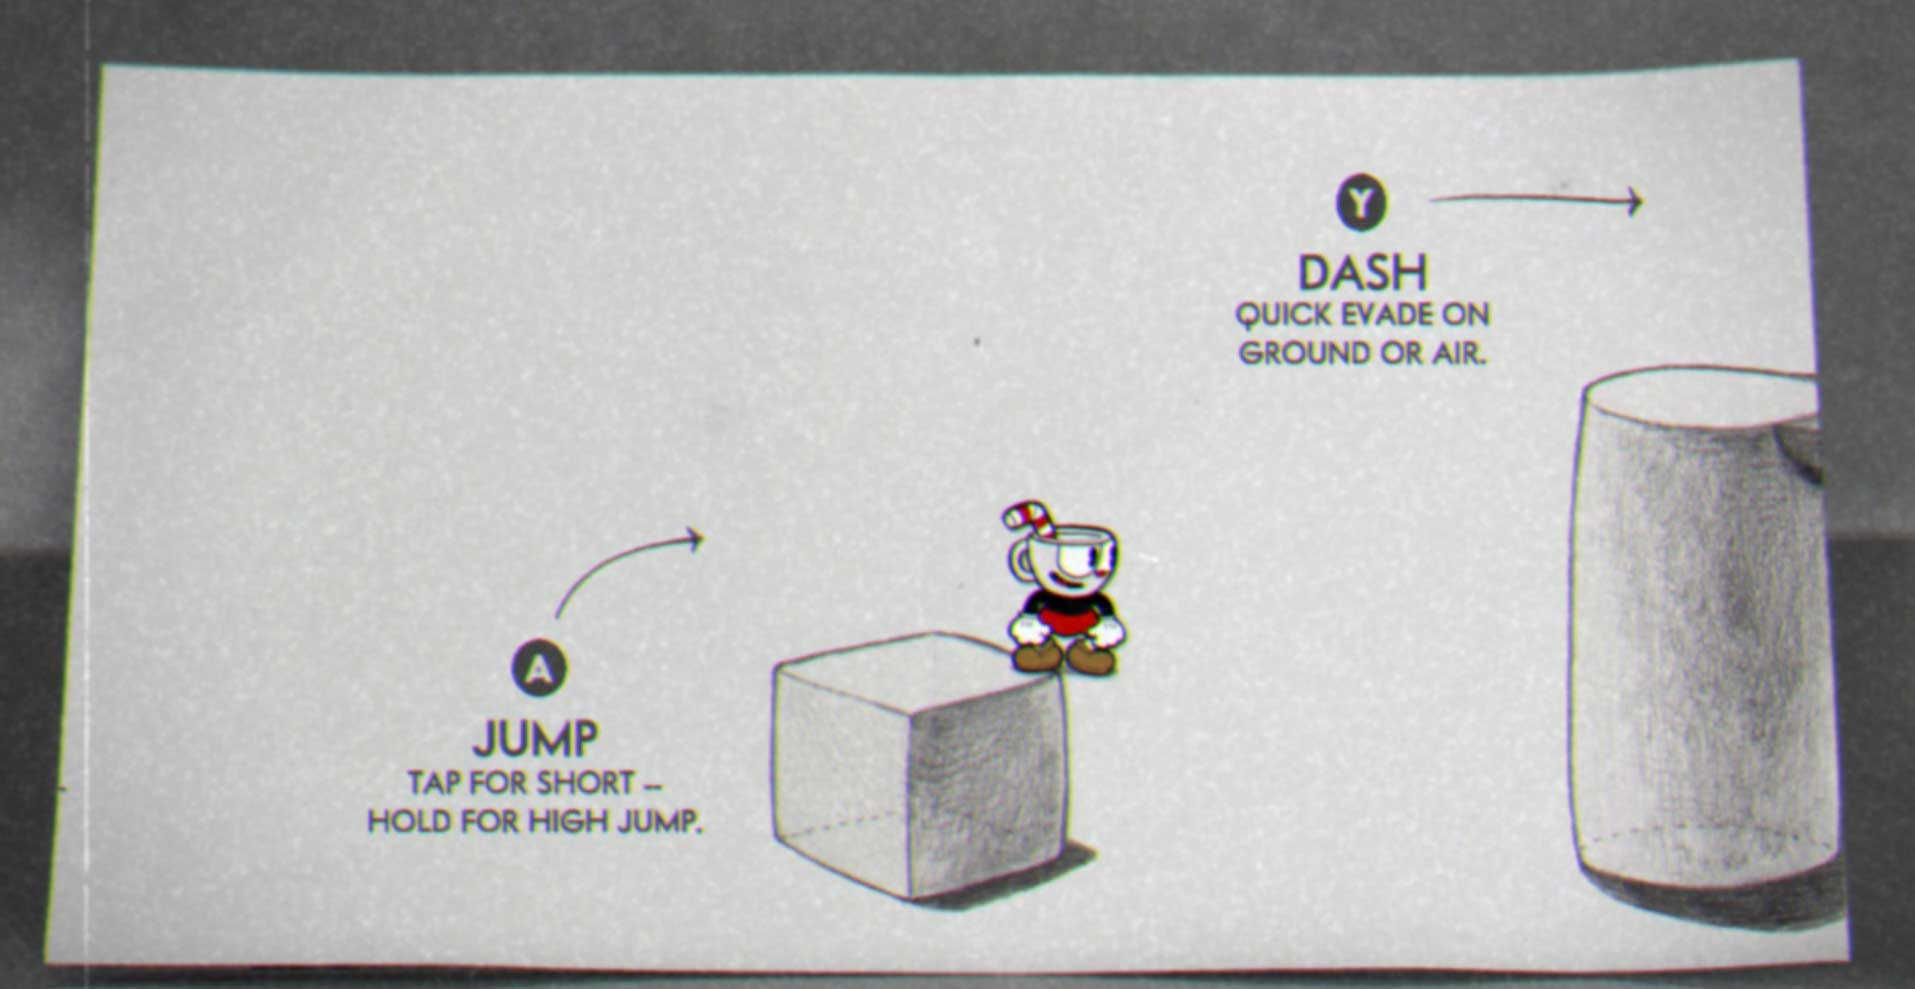 Cuphead is a dificult game tutorial